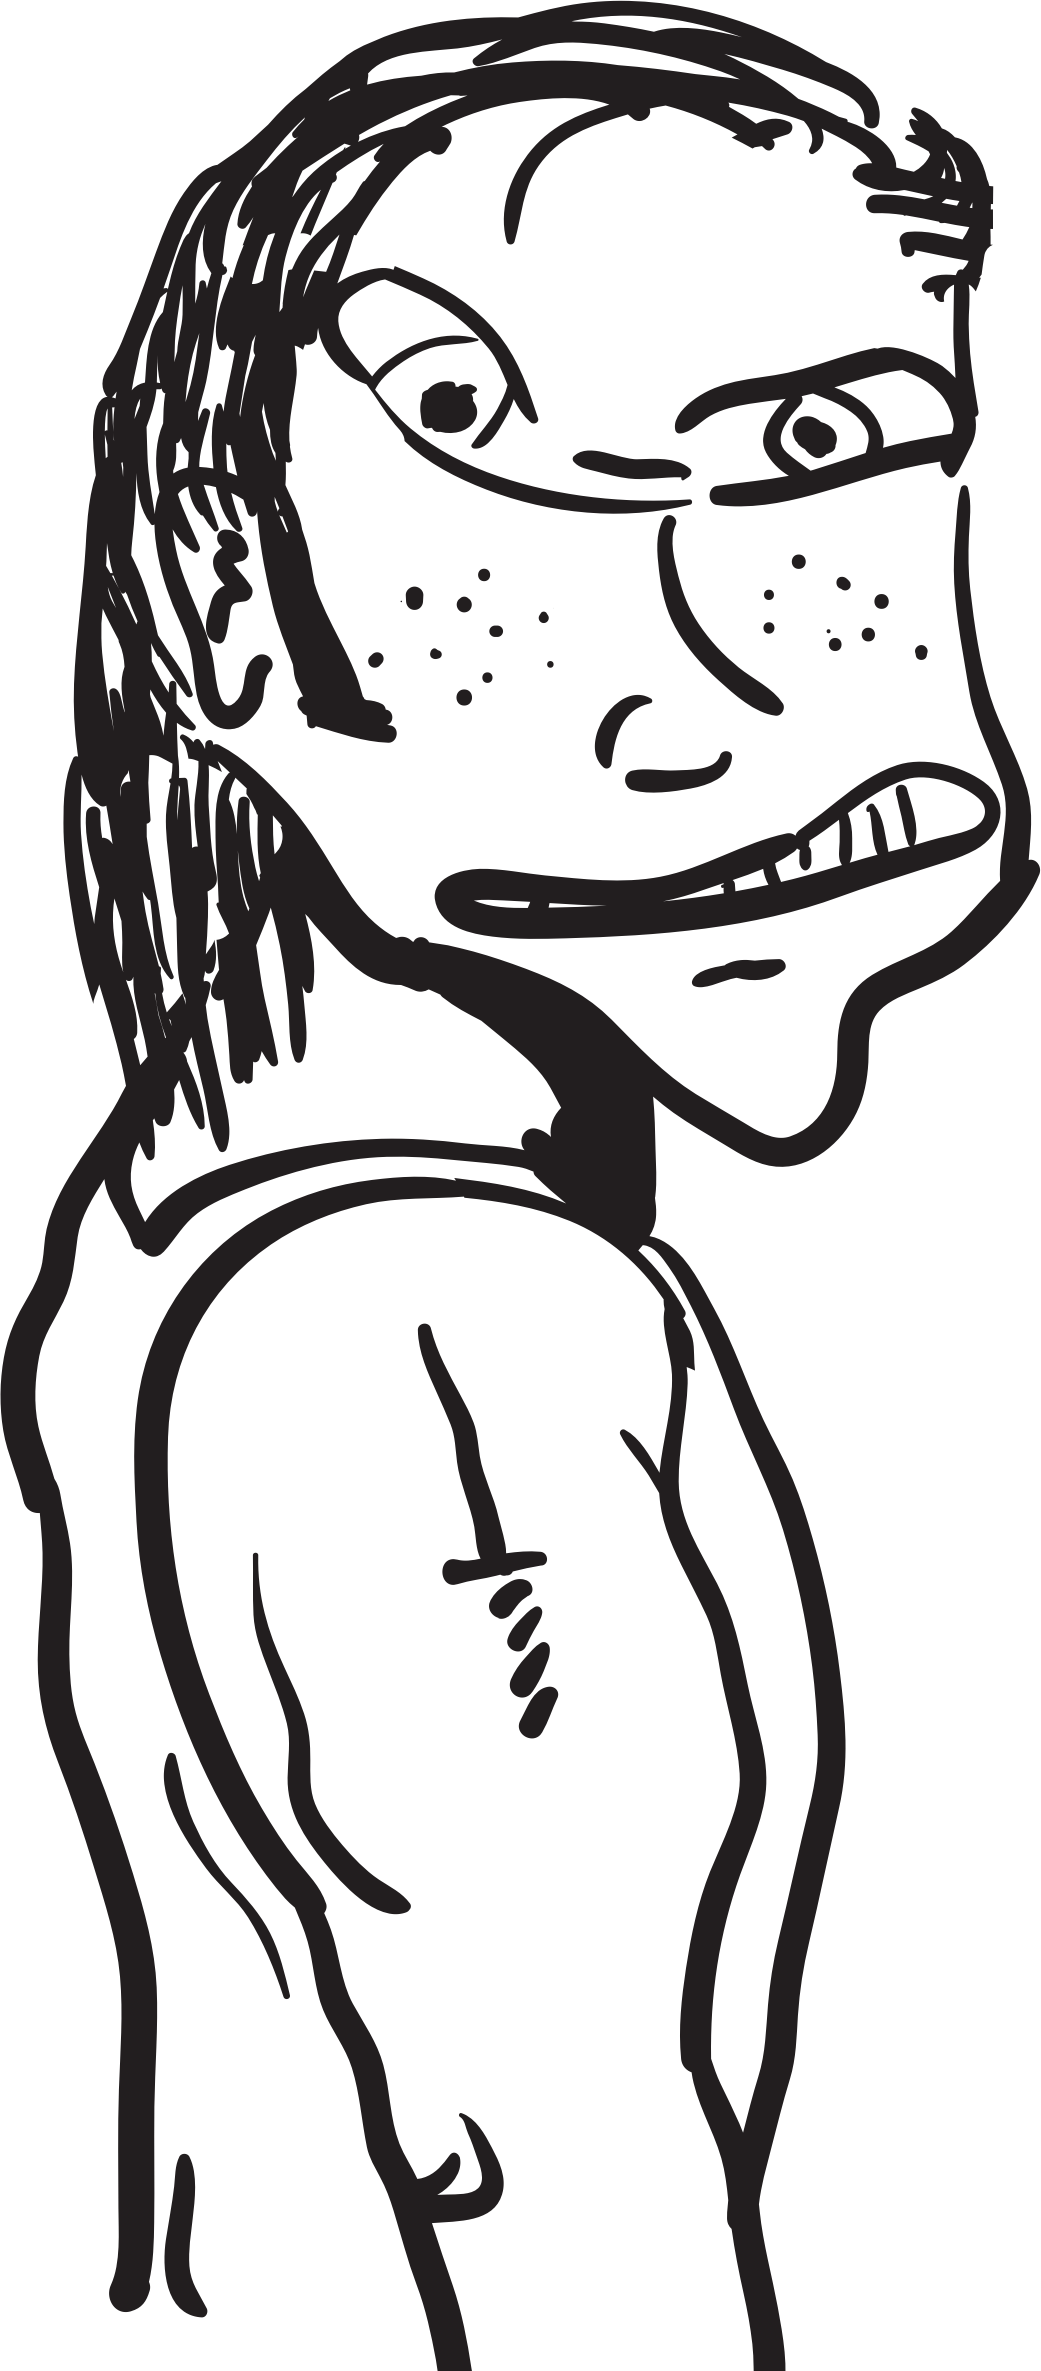 The of hate. Cowboy clipart face